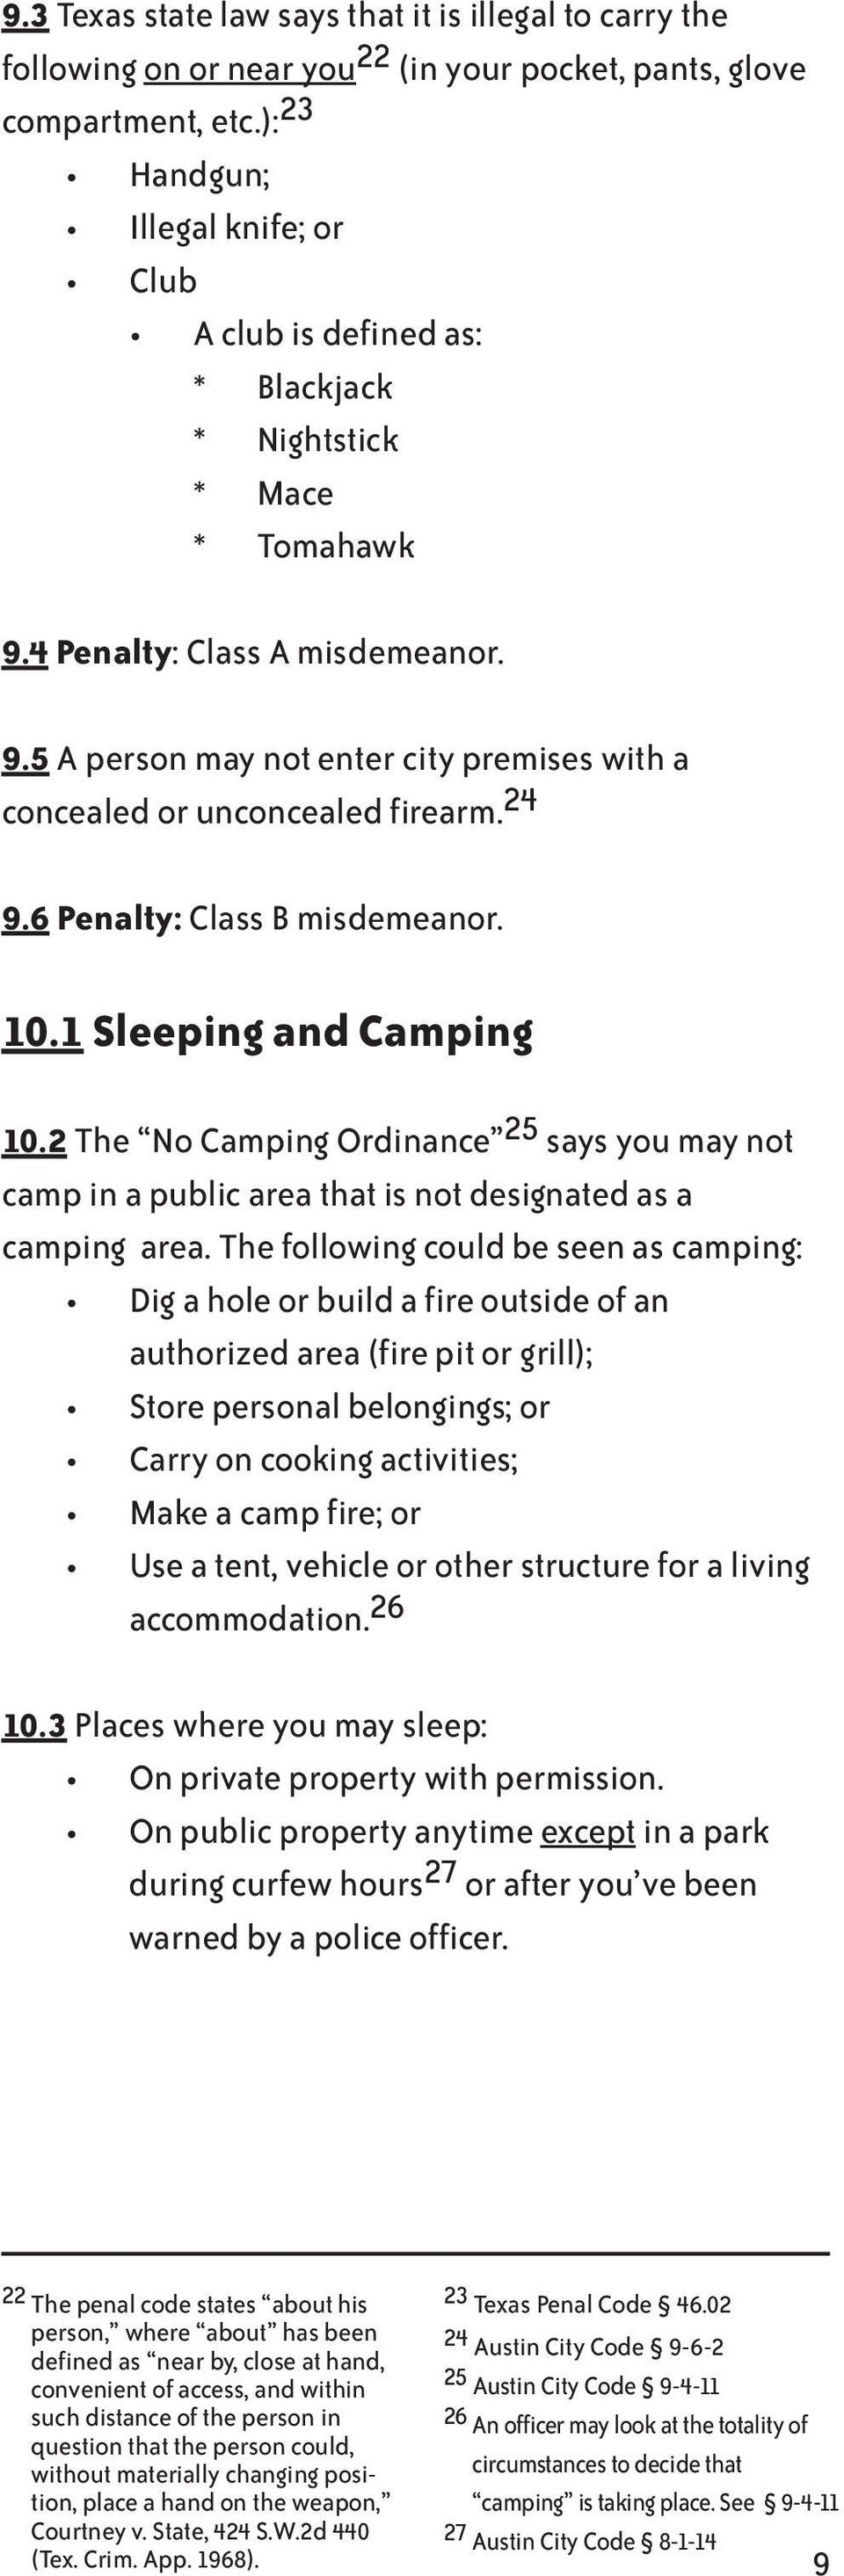 24 9.6 Penalty: Class B misdemeanor. 10.1 Sleeping and Camping 10.2 The No Camping Ordinance 25 says you may not camp in a public area that is not designated as a camping area.